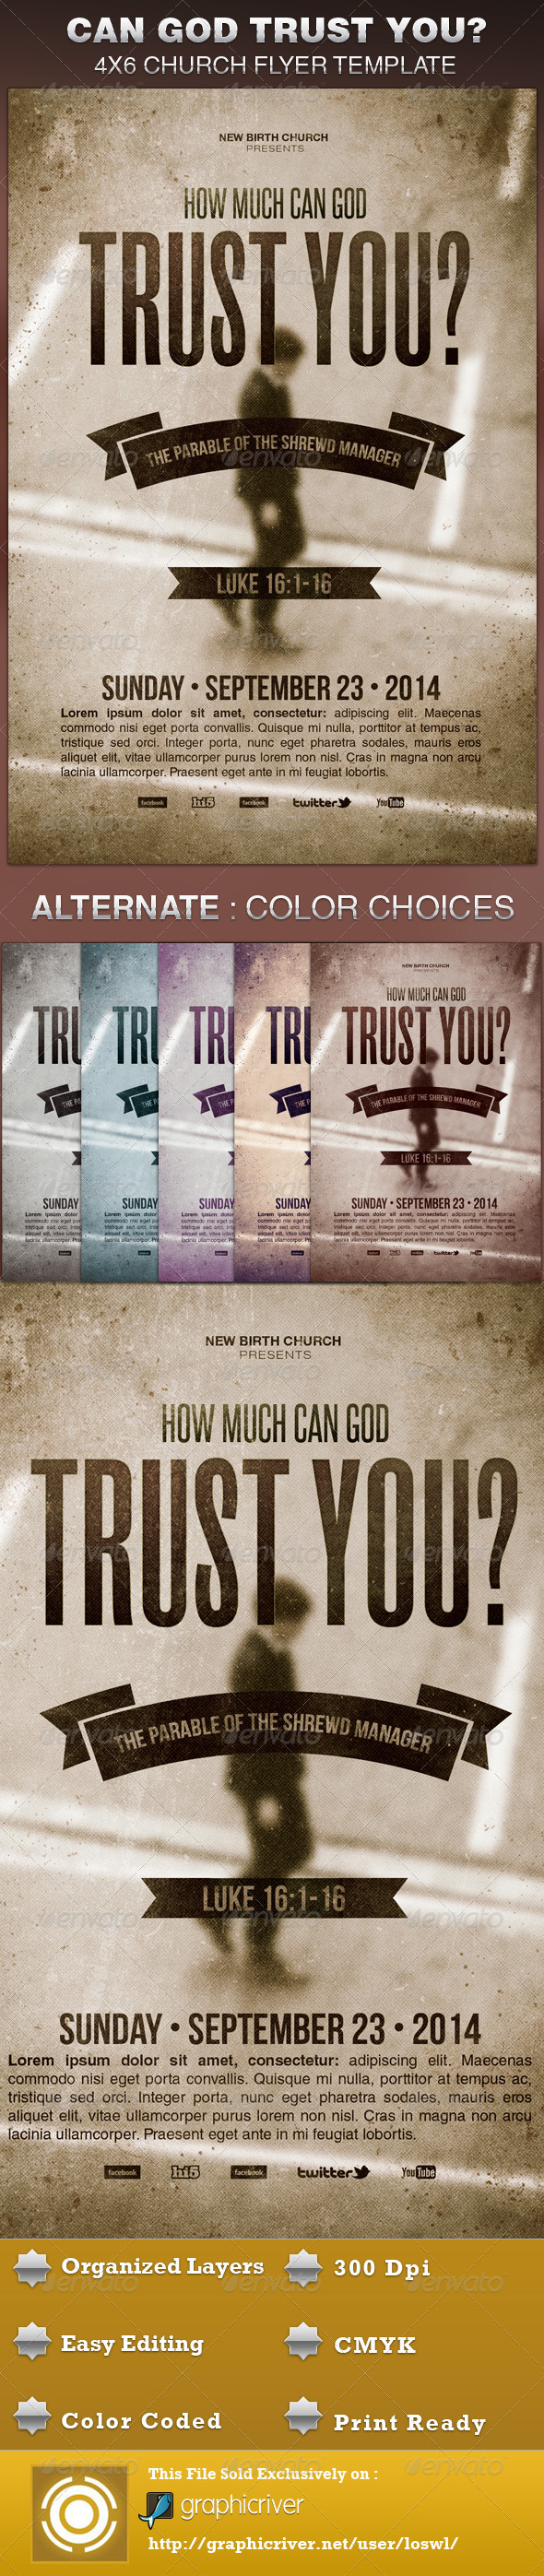 How Much Can God Trust You Church Flyer Template - Church Flyers